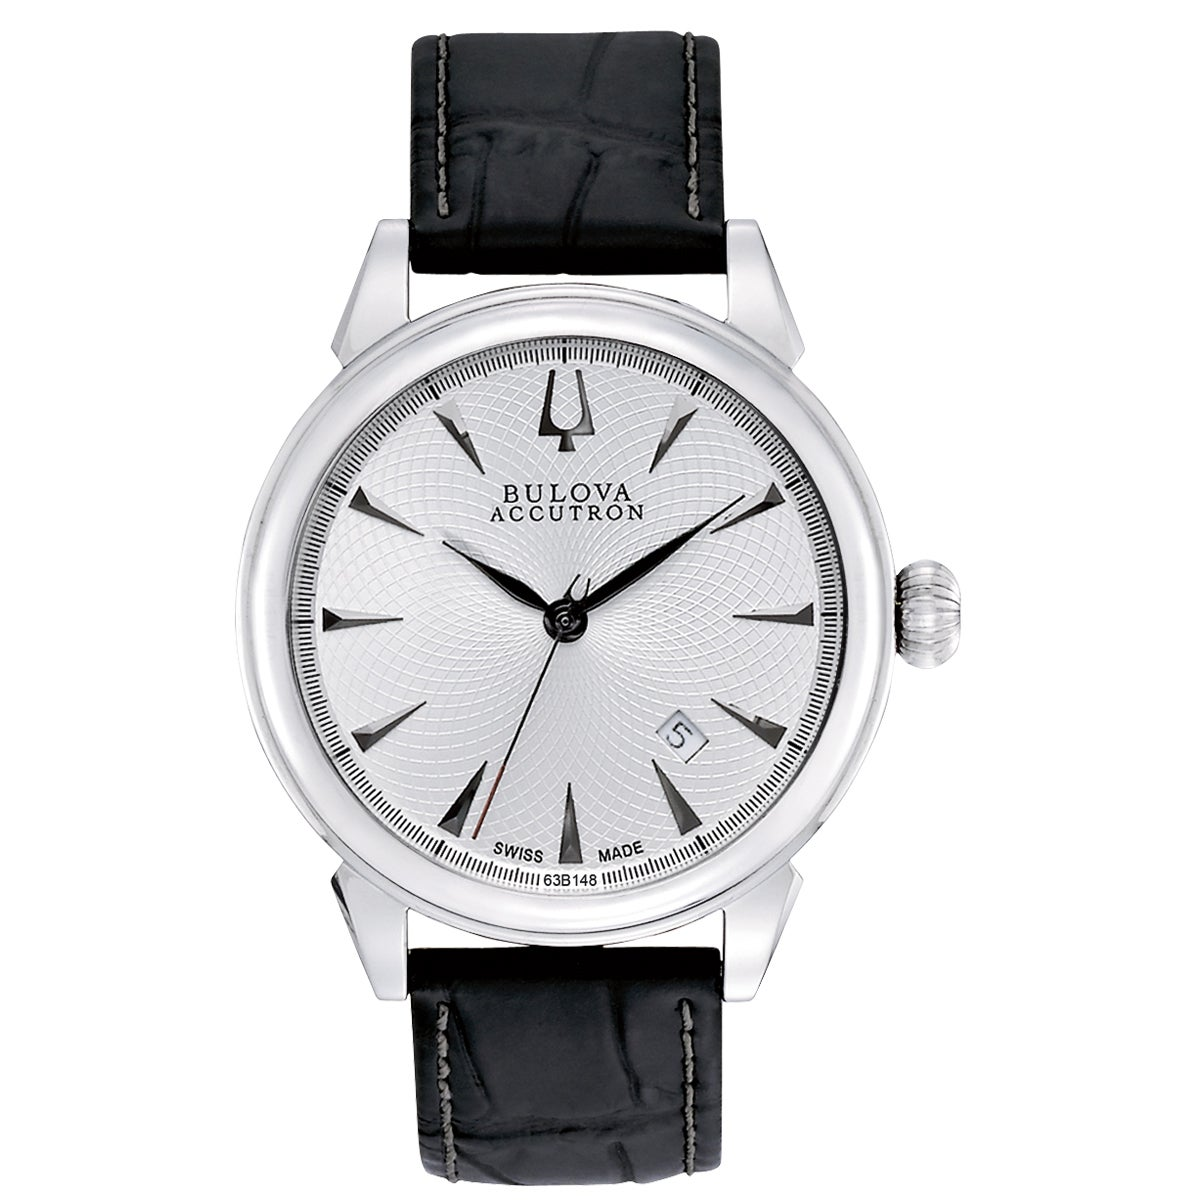 Bulova accutron men 39 s 39 gemini 39 automatic movement watch free shipping today for Auto movement watches